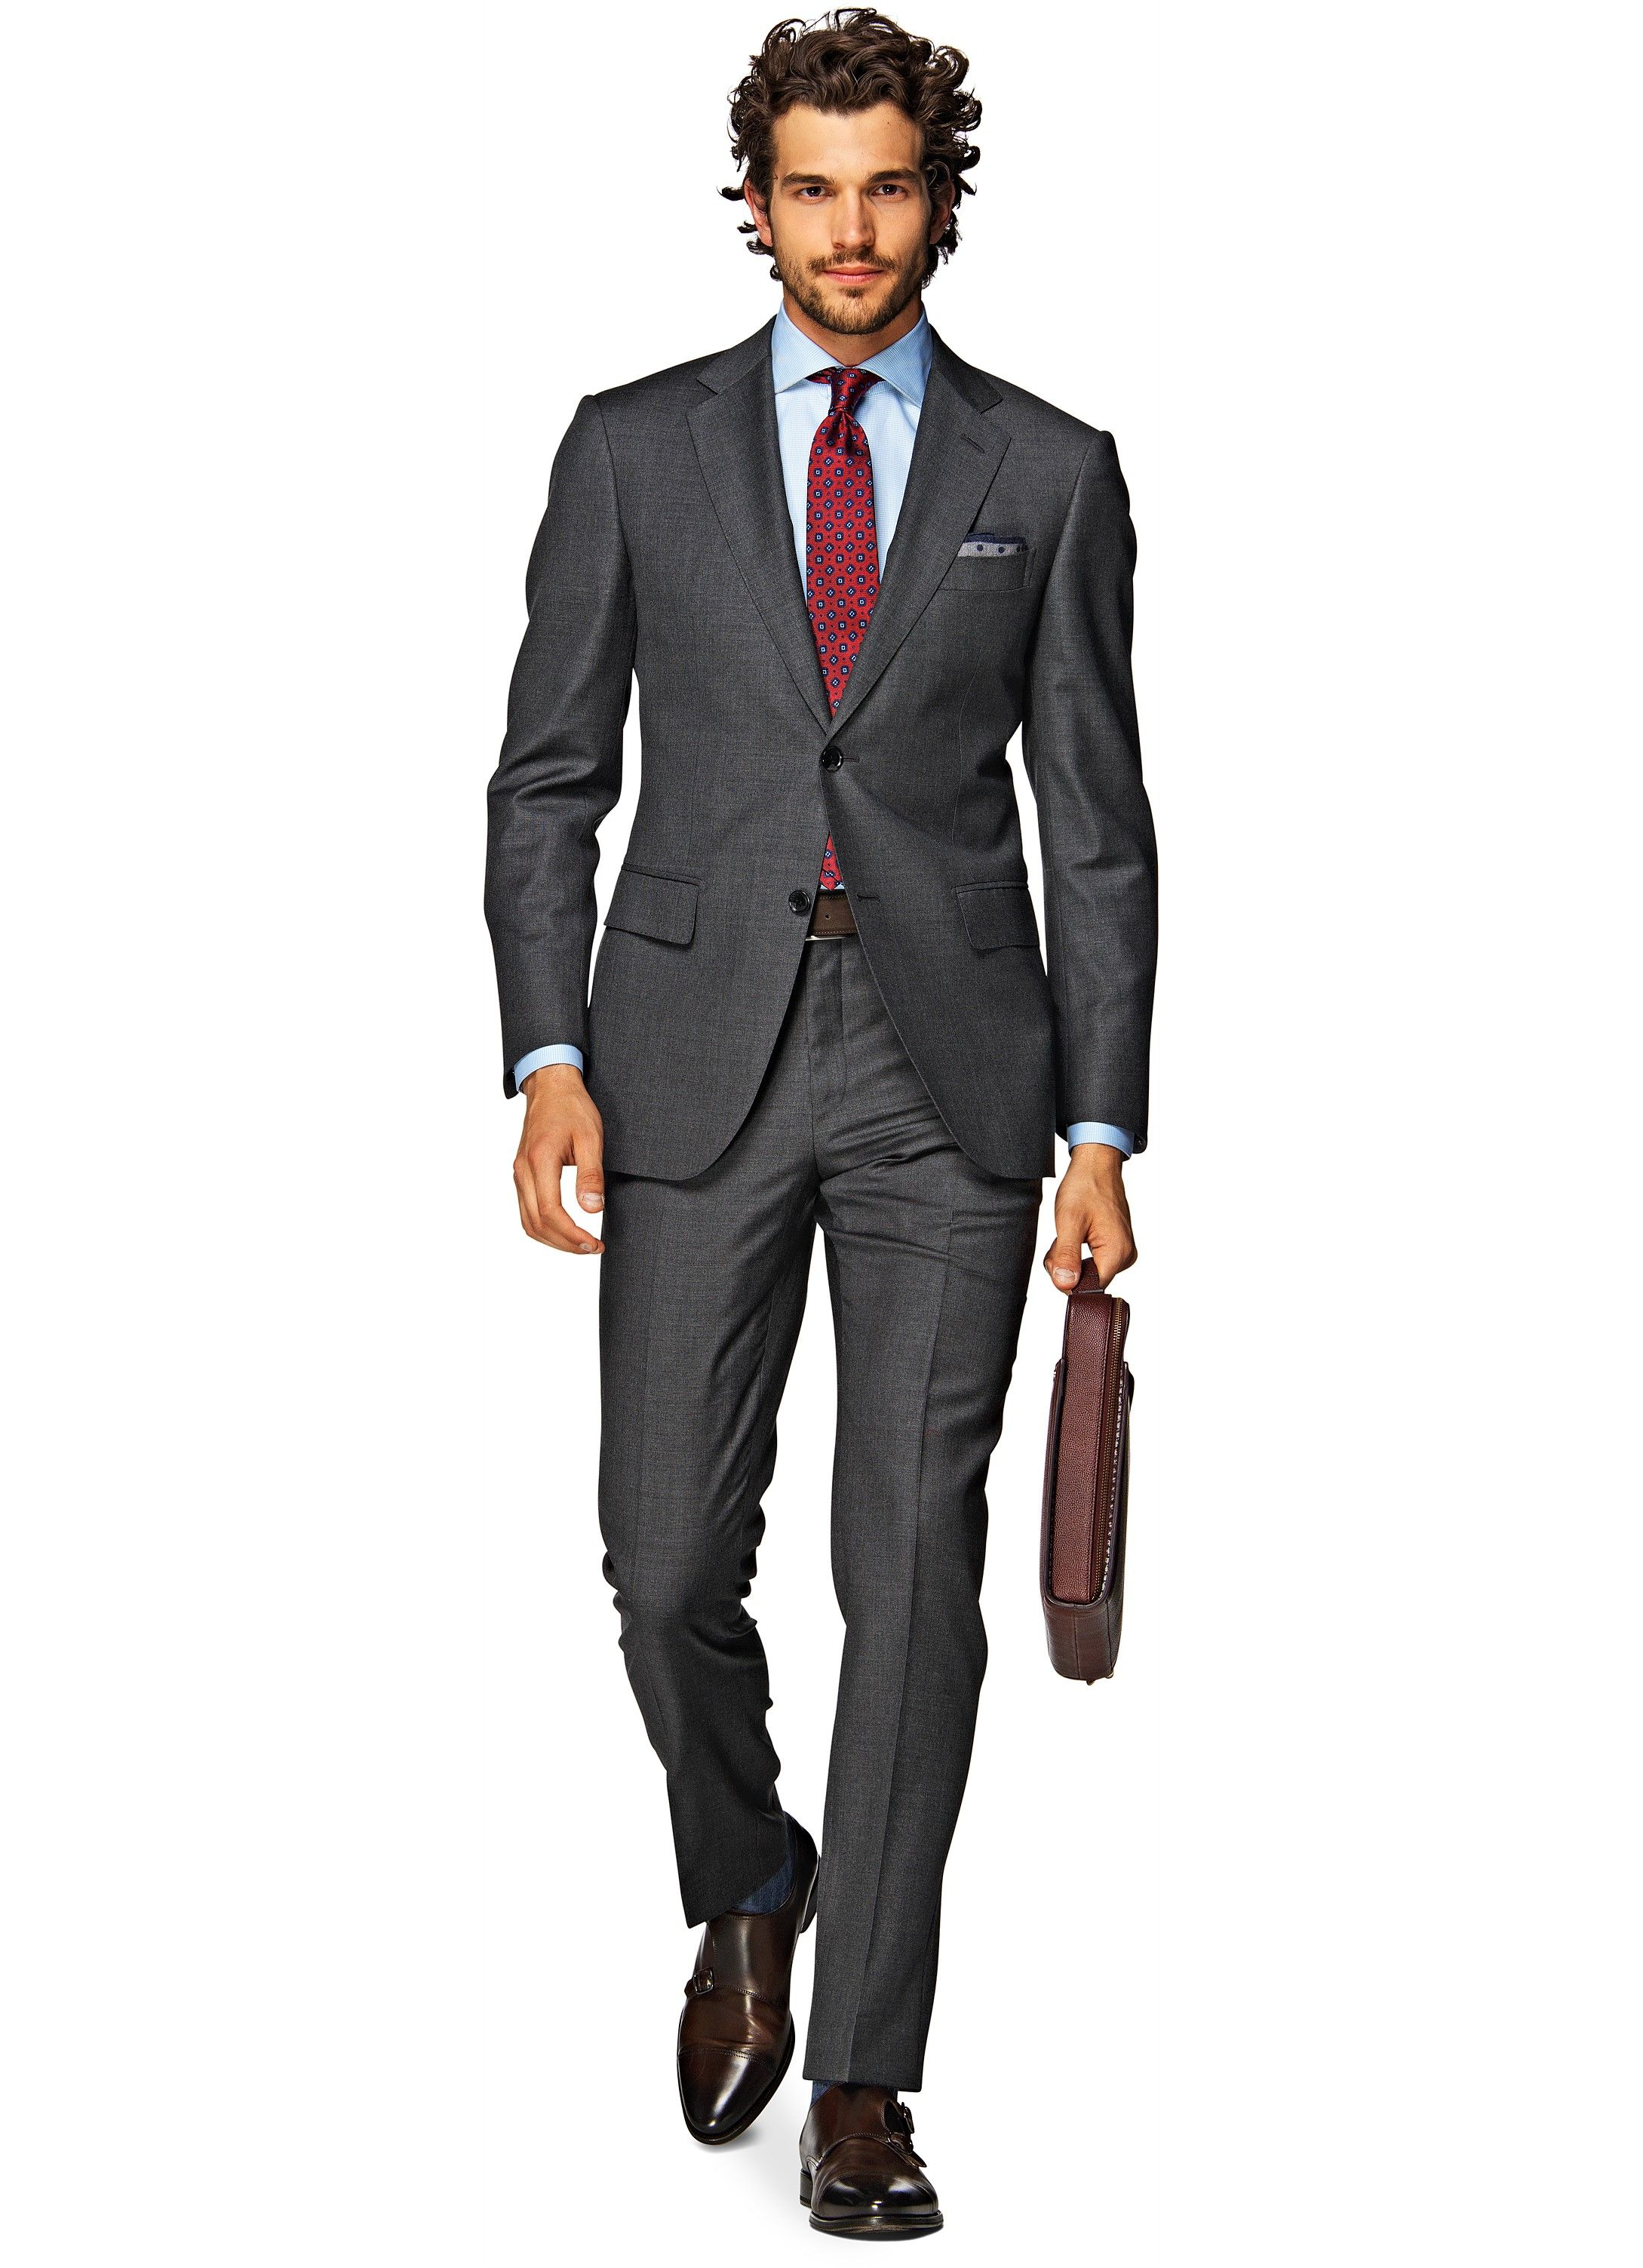 A Minimalist Wardrobe for the Well-Dressed Man 05d8fd7ccc311